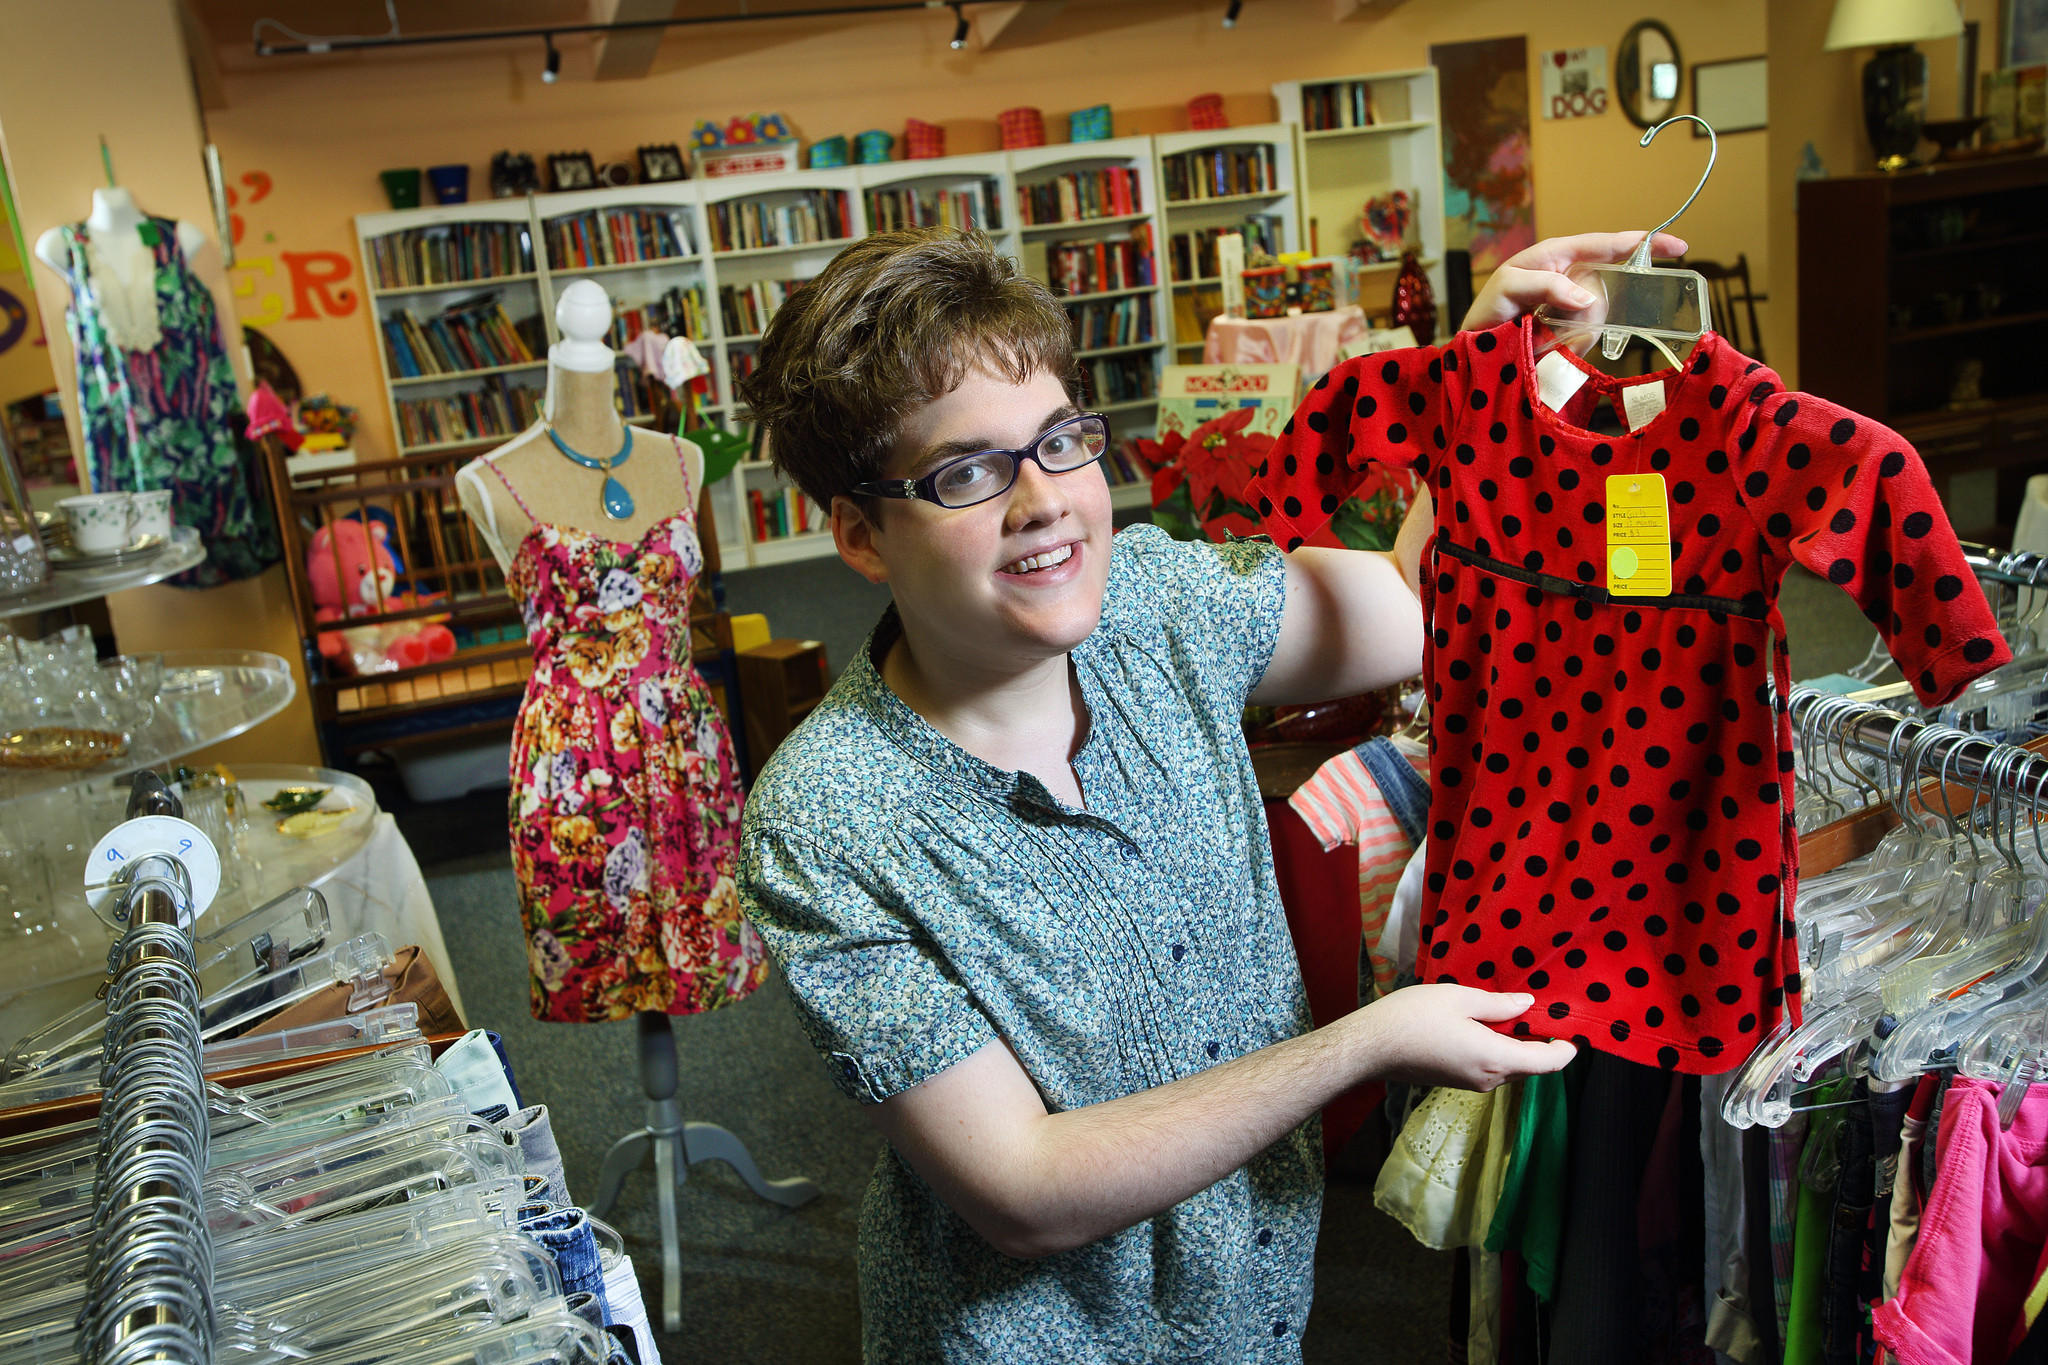 Ashleigh Wood has worked at Linwood Boutique, a thrift store that helps train autistic adults, for nearly four years.